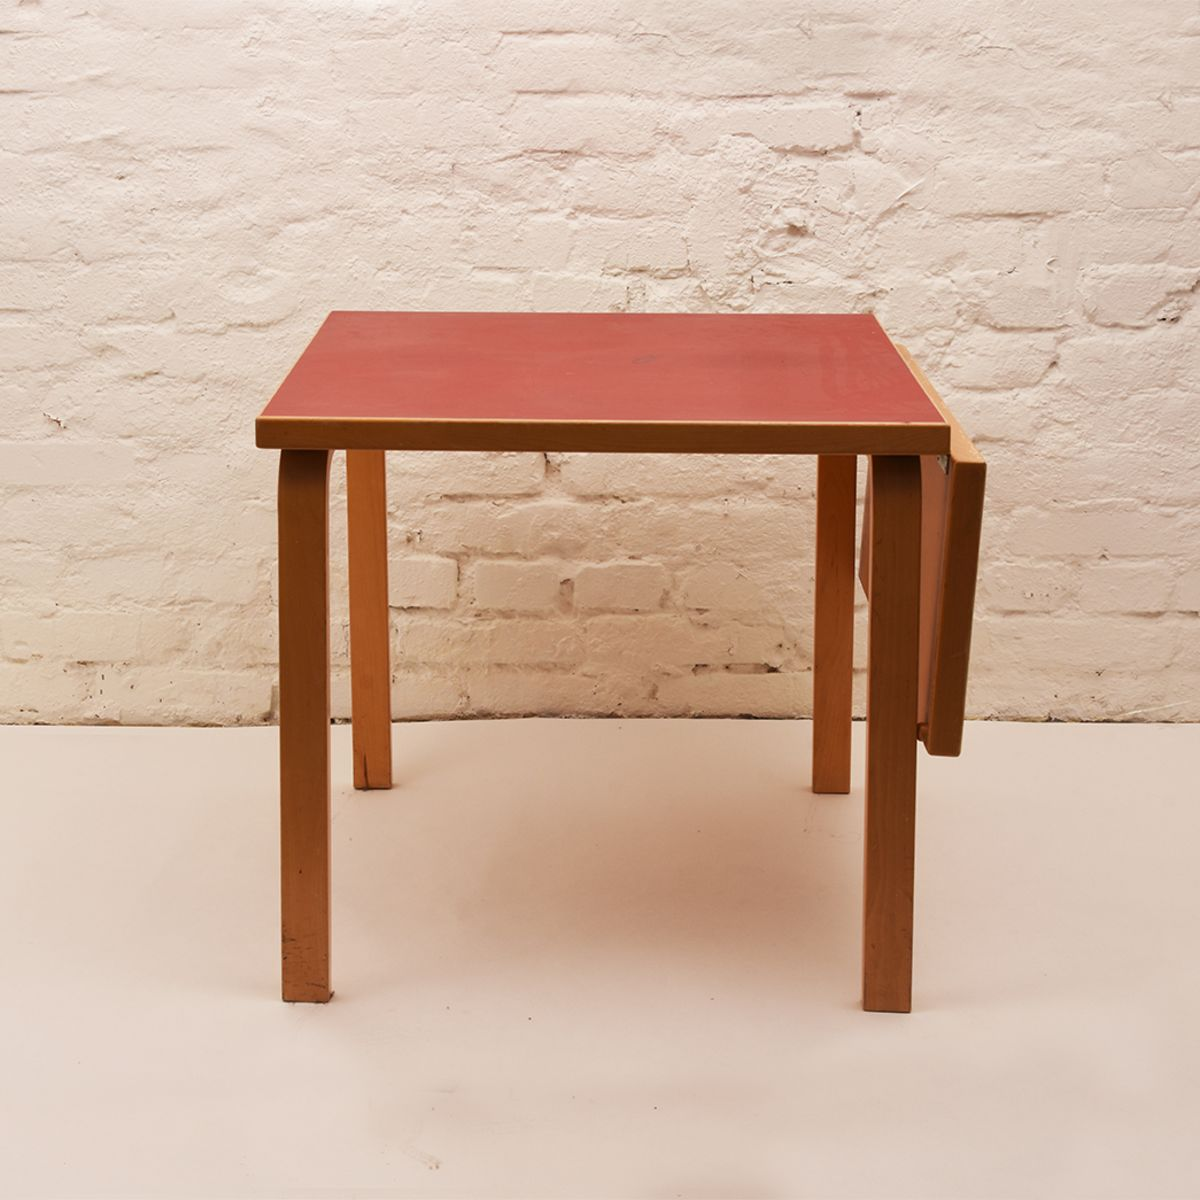 Alvar-Aalto_Red-Table